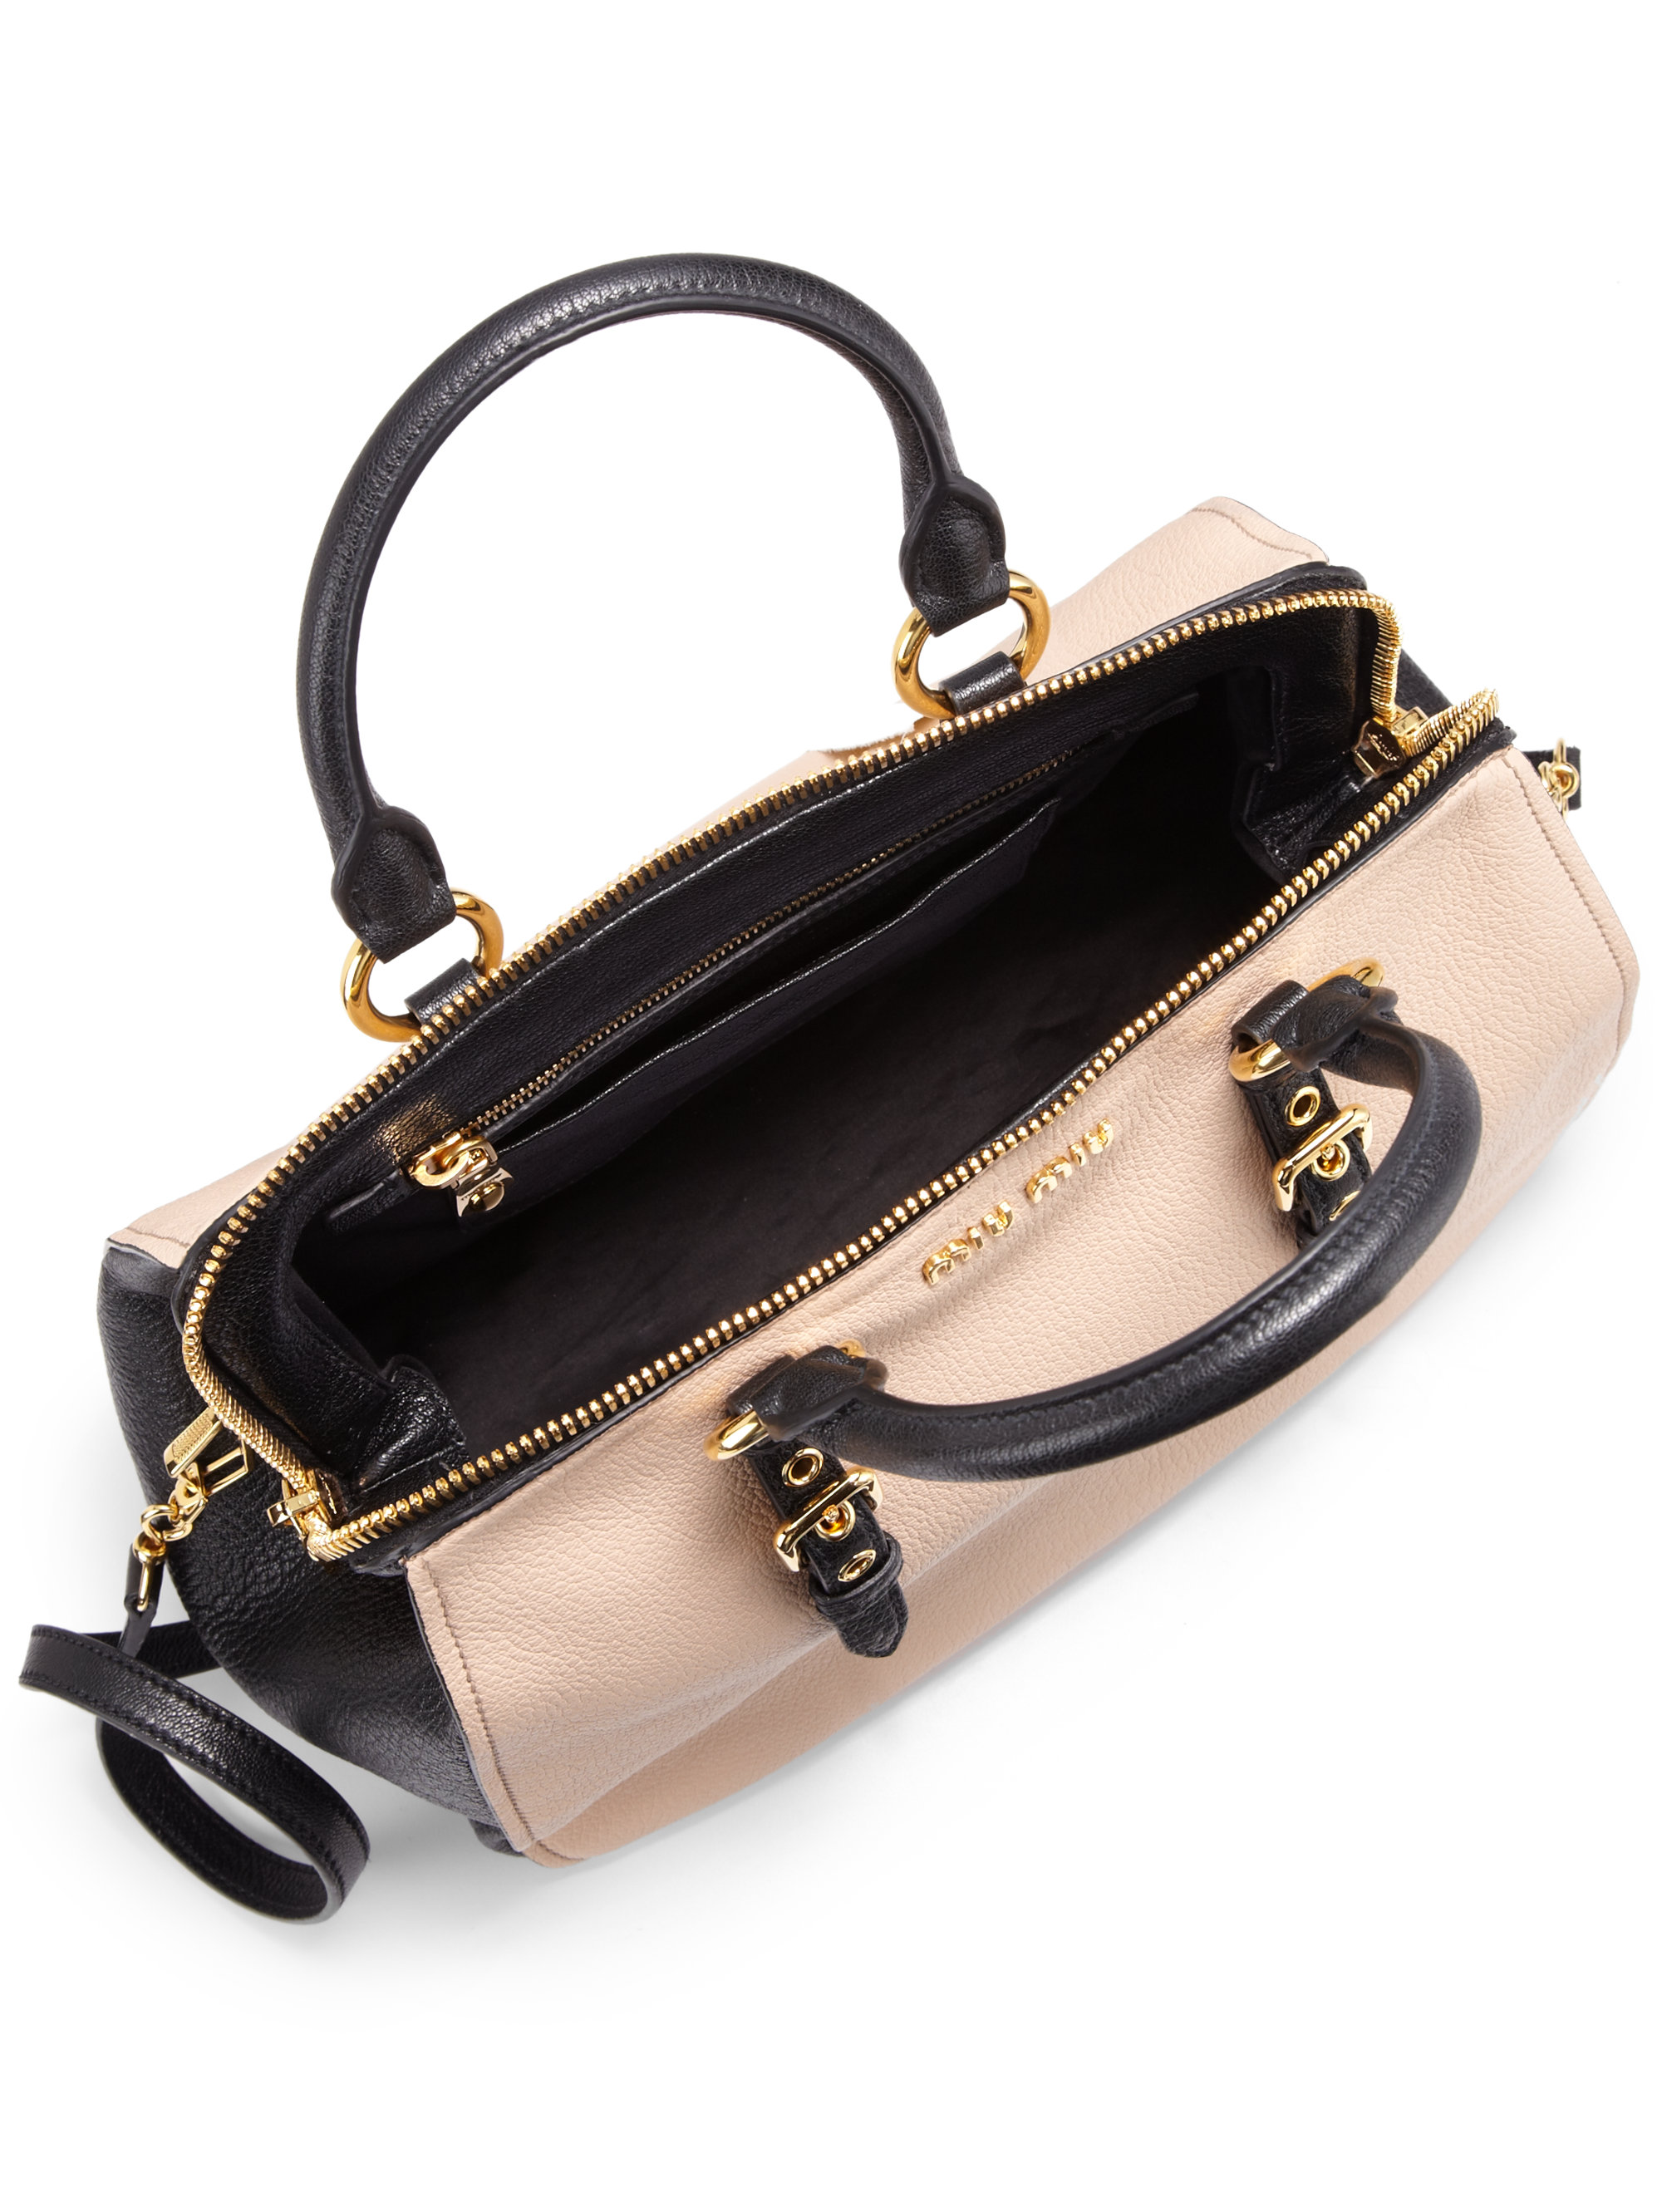 8649d5f83653 Gallery. Previously sold at  Saks Fifth Avenue · Women s Bowling Bags  Women s Miu Miu Shoulder ...